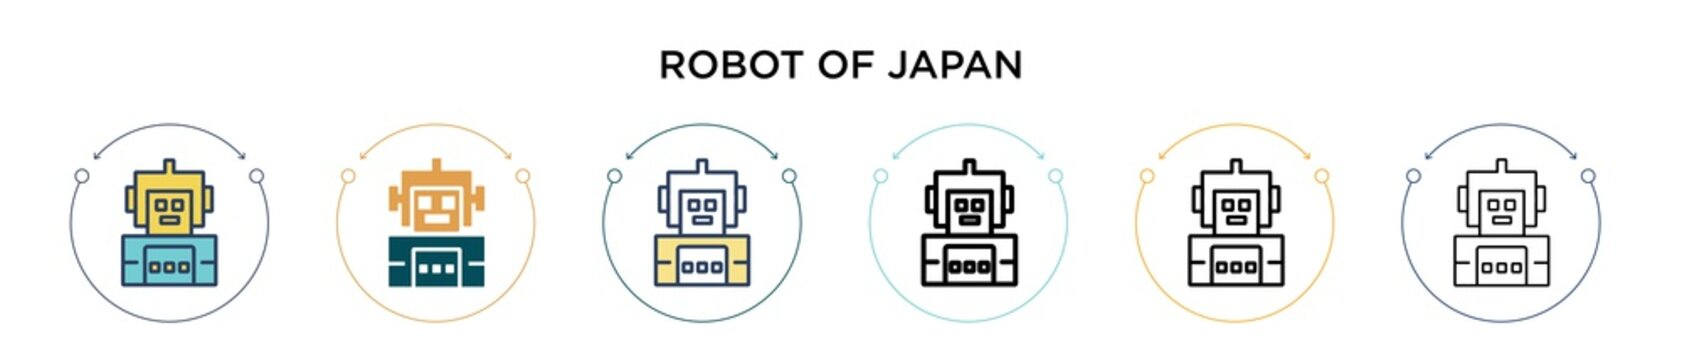 Robot of japan icon in filled, thin line, outline and stroke style. Vector illustration of two colored and black robot of japan vector icons designs can be used for mobile, ui, web